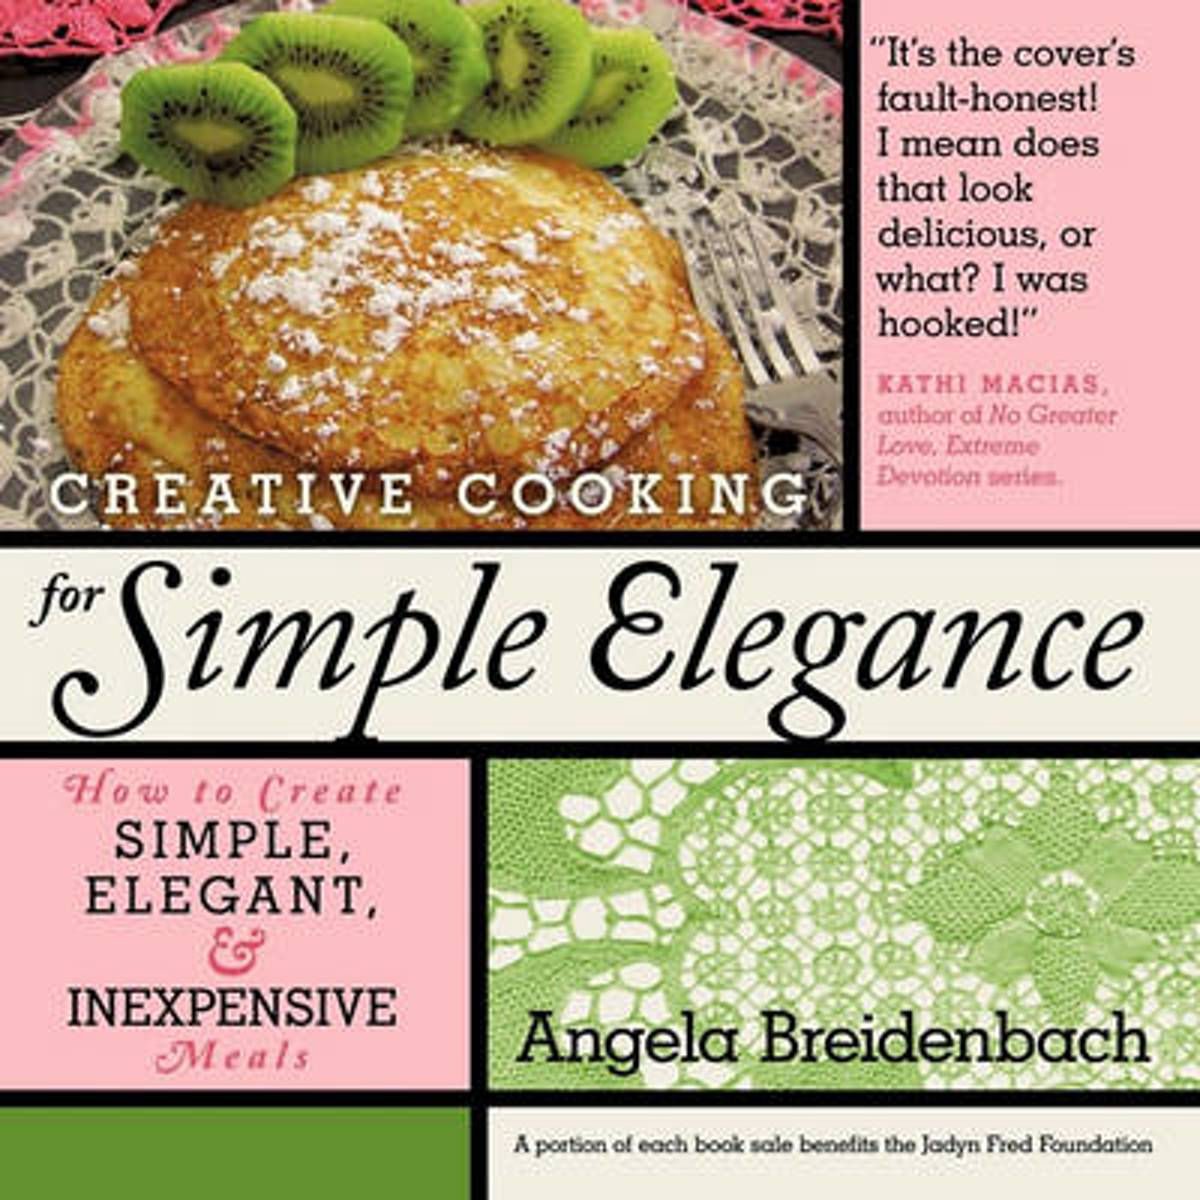 Creative Cooking for Simple Elegance